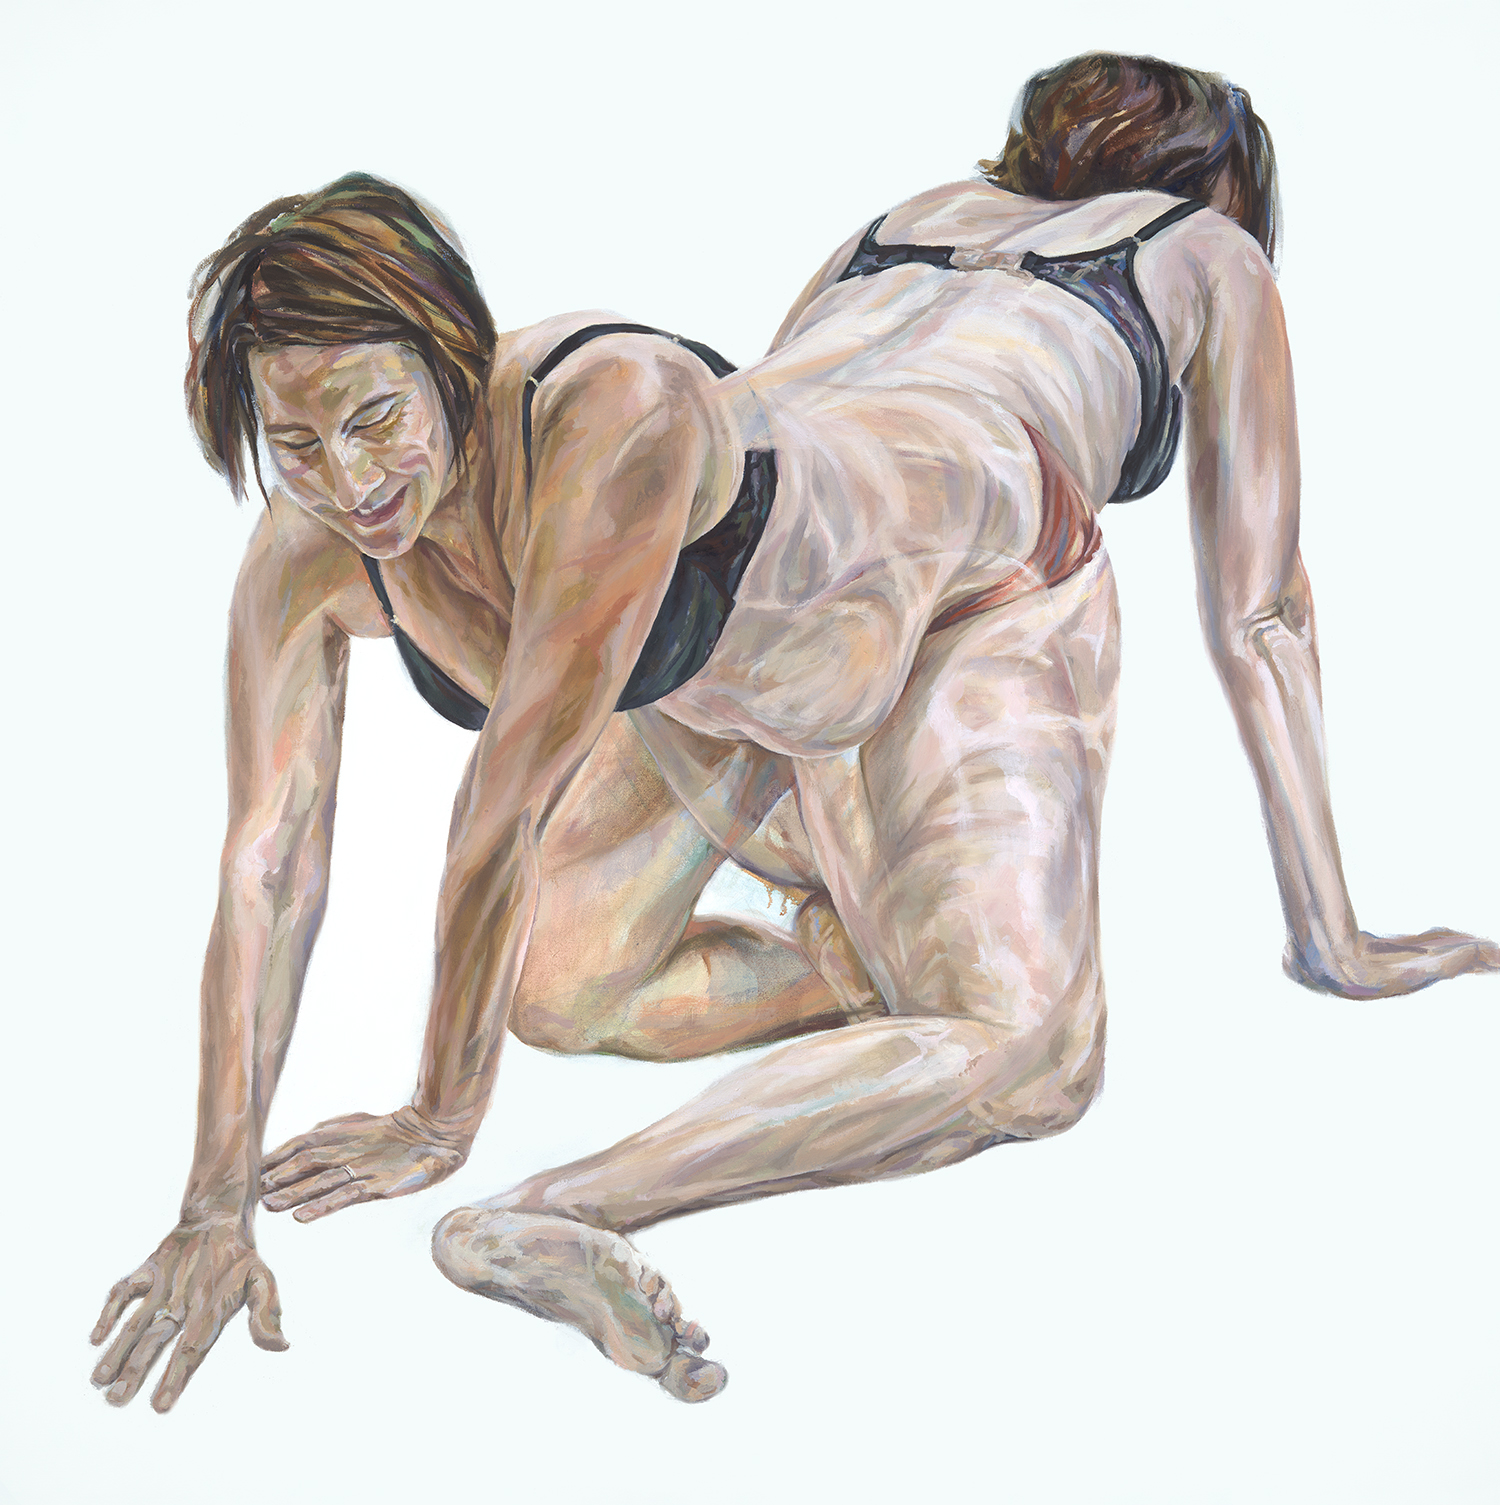 Oil painting of 2 overlapping figures of nude pregnant woman